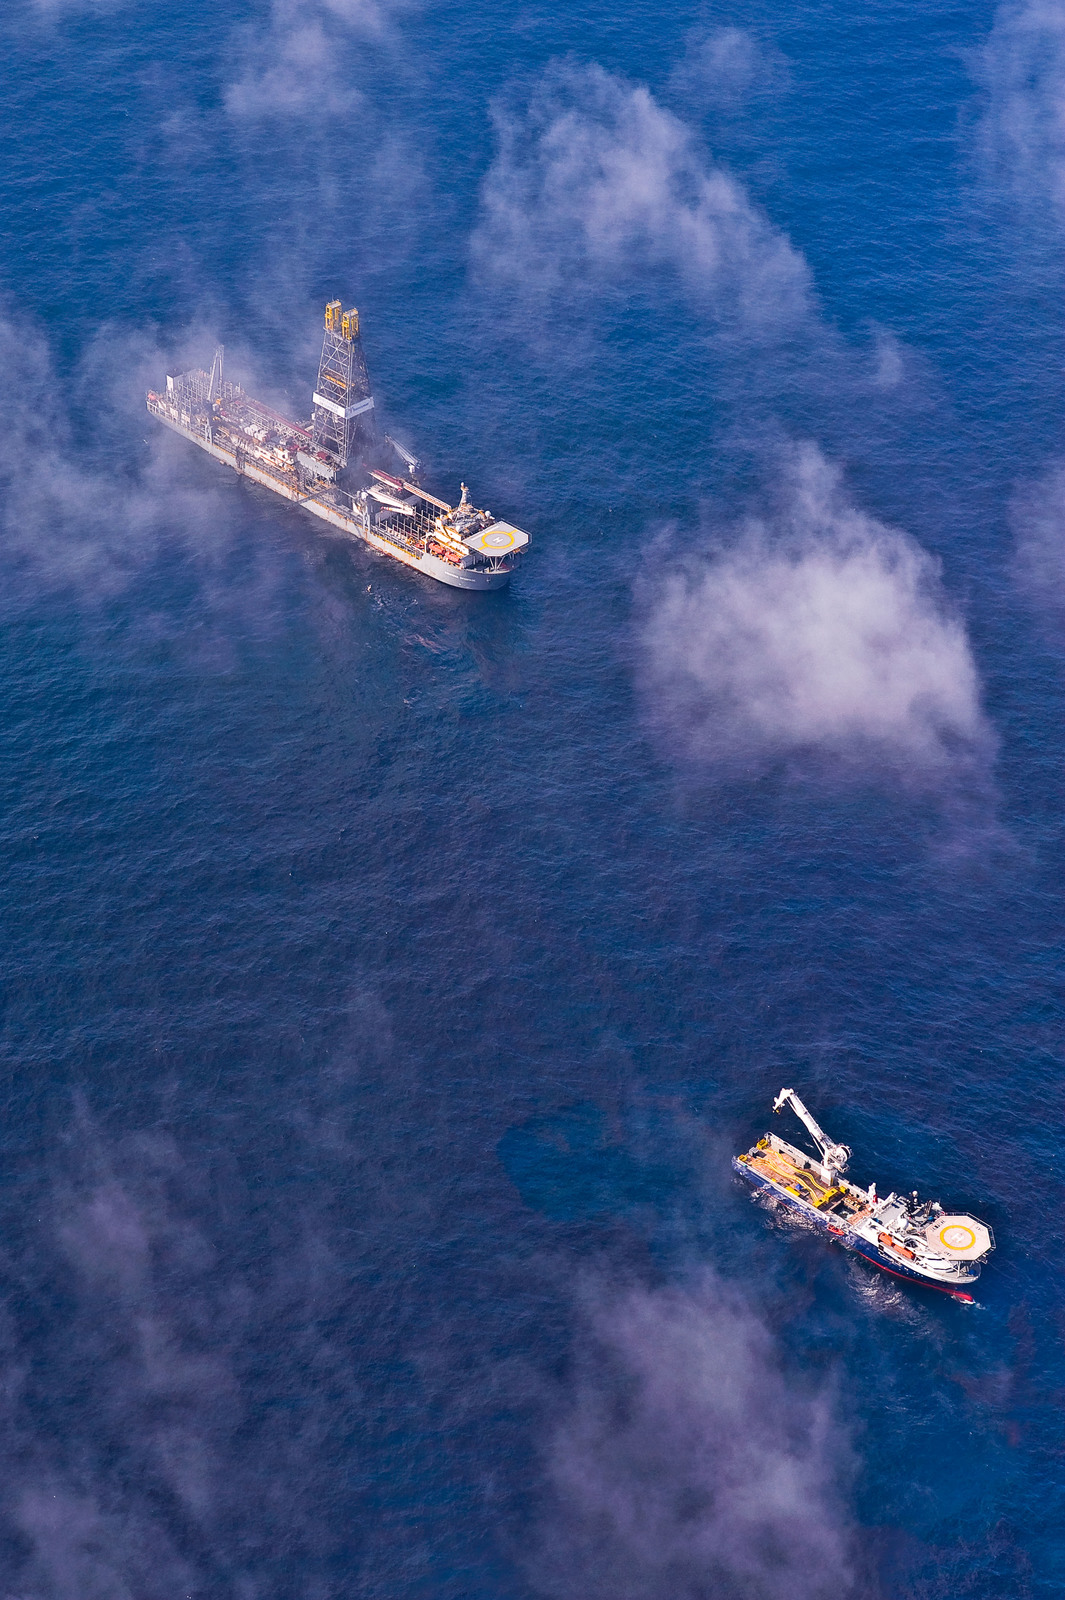 Office of the Administrator (Lisa P. Jackson) - ASPECT Flight over Gulfport, Mississippi (BP Oil Spill) - Support ships in operations area of BP Oil Spill,  Gulf of Mexico. USEPA photo by Eric Vance [412-APD-668-2010-05-14_AspectFlight_035.jpg]